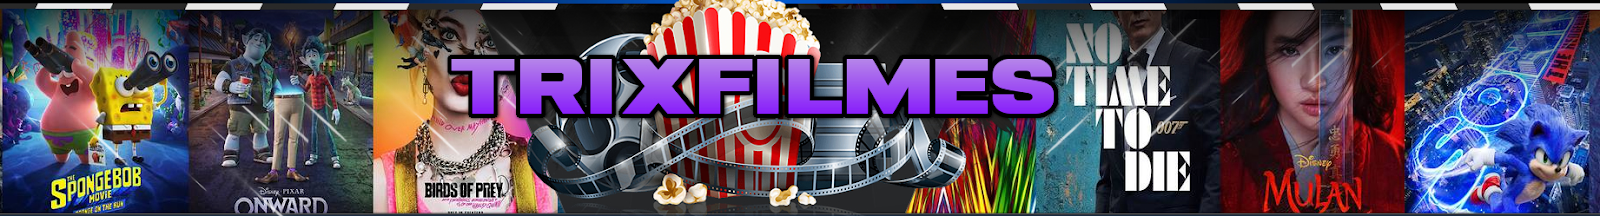 Trix Filmes Torrent - Series Torrents